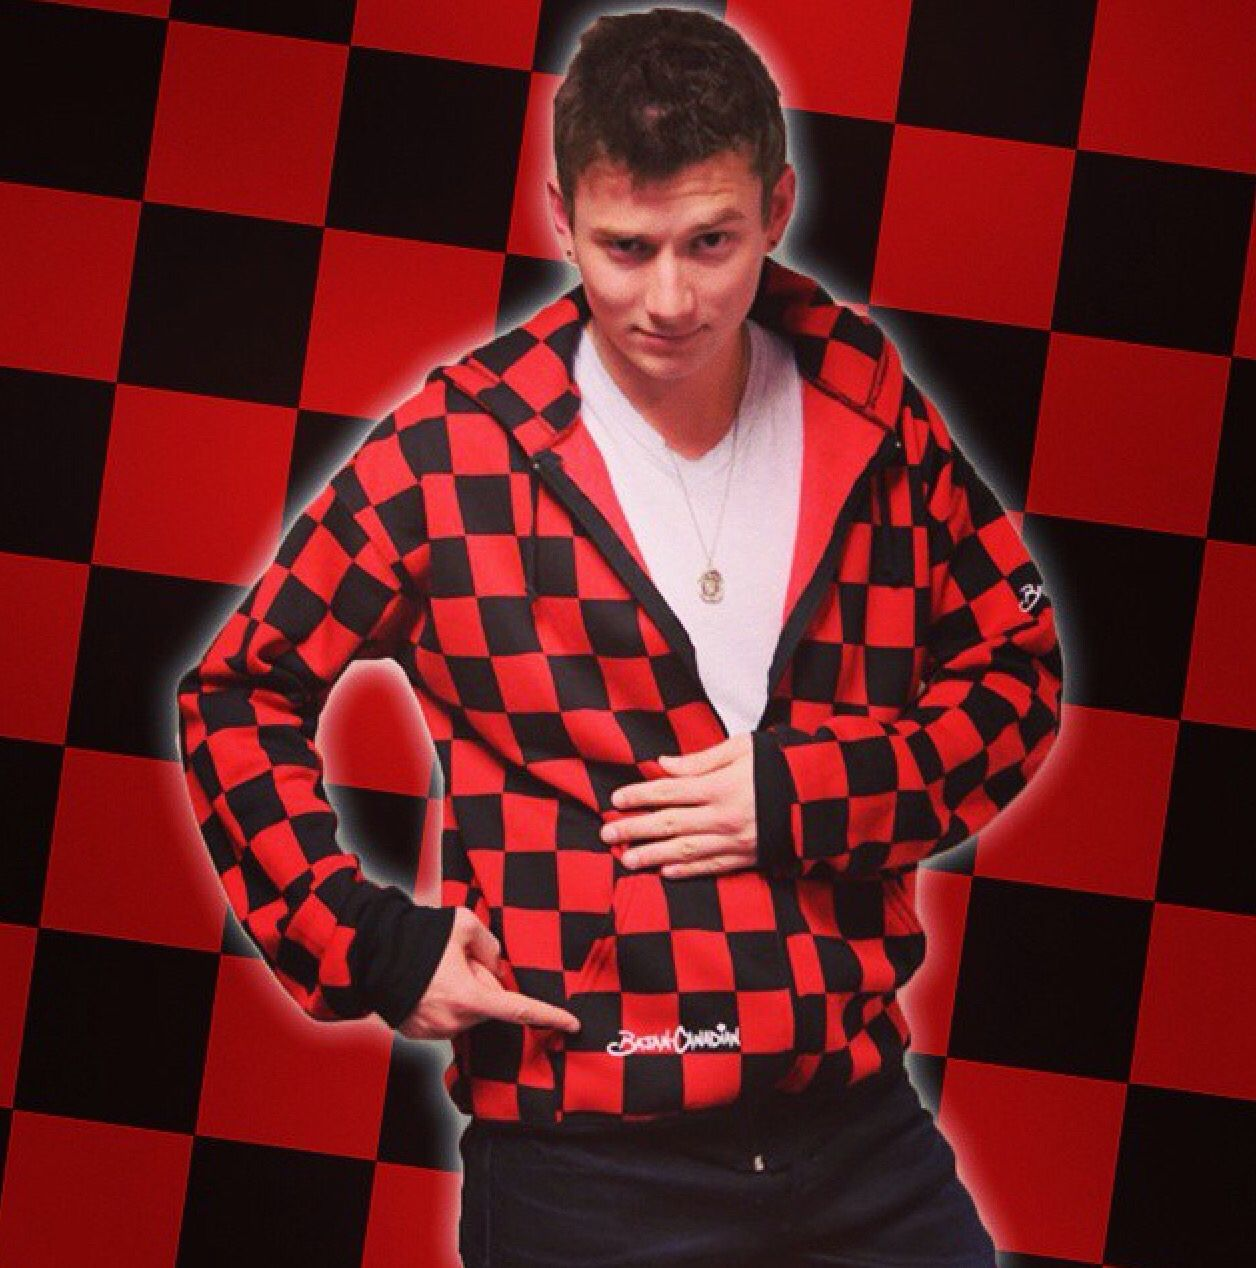 BajanCanadian red and black checkered jackets. BUY MT THIS